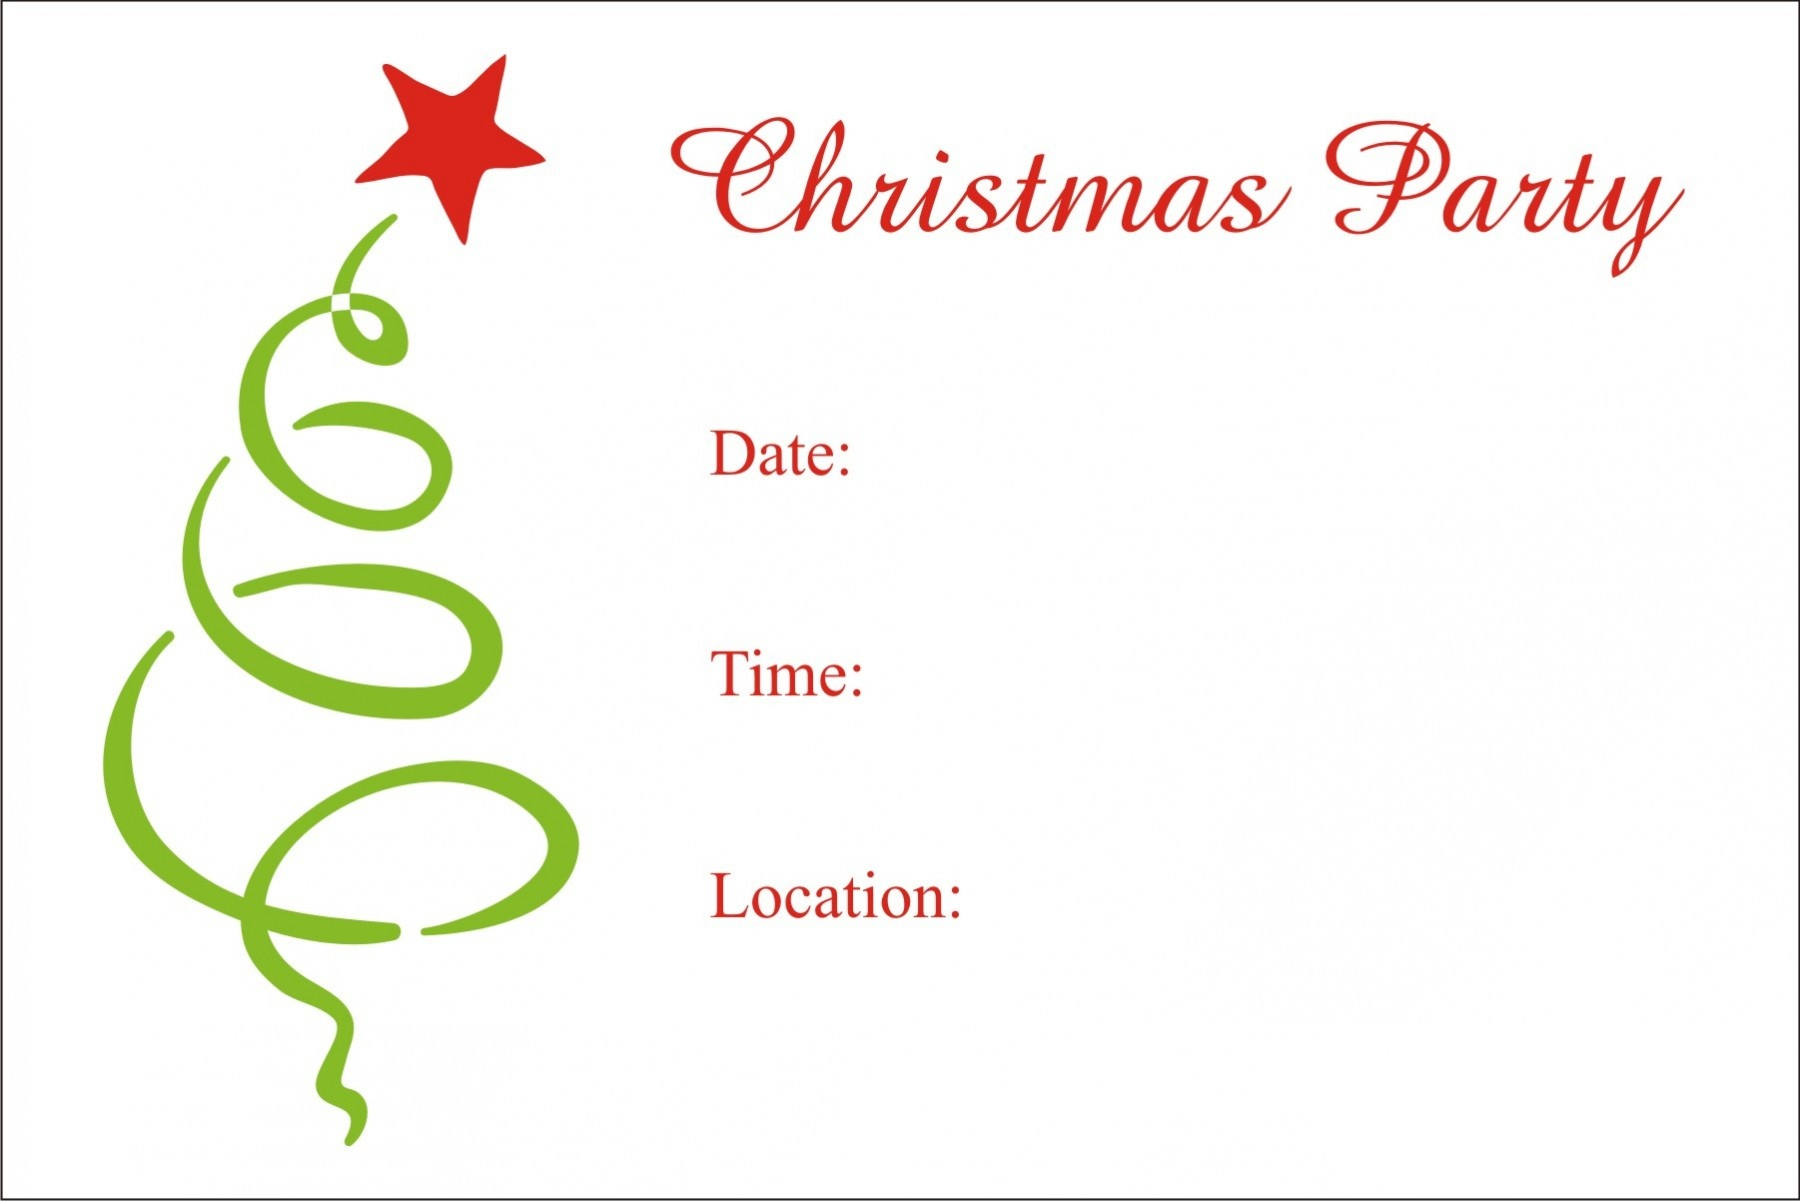 Christmas Party Free Printable Holiday Invitation Personalized Party - Christmas Party Invitation Templates Free Printable